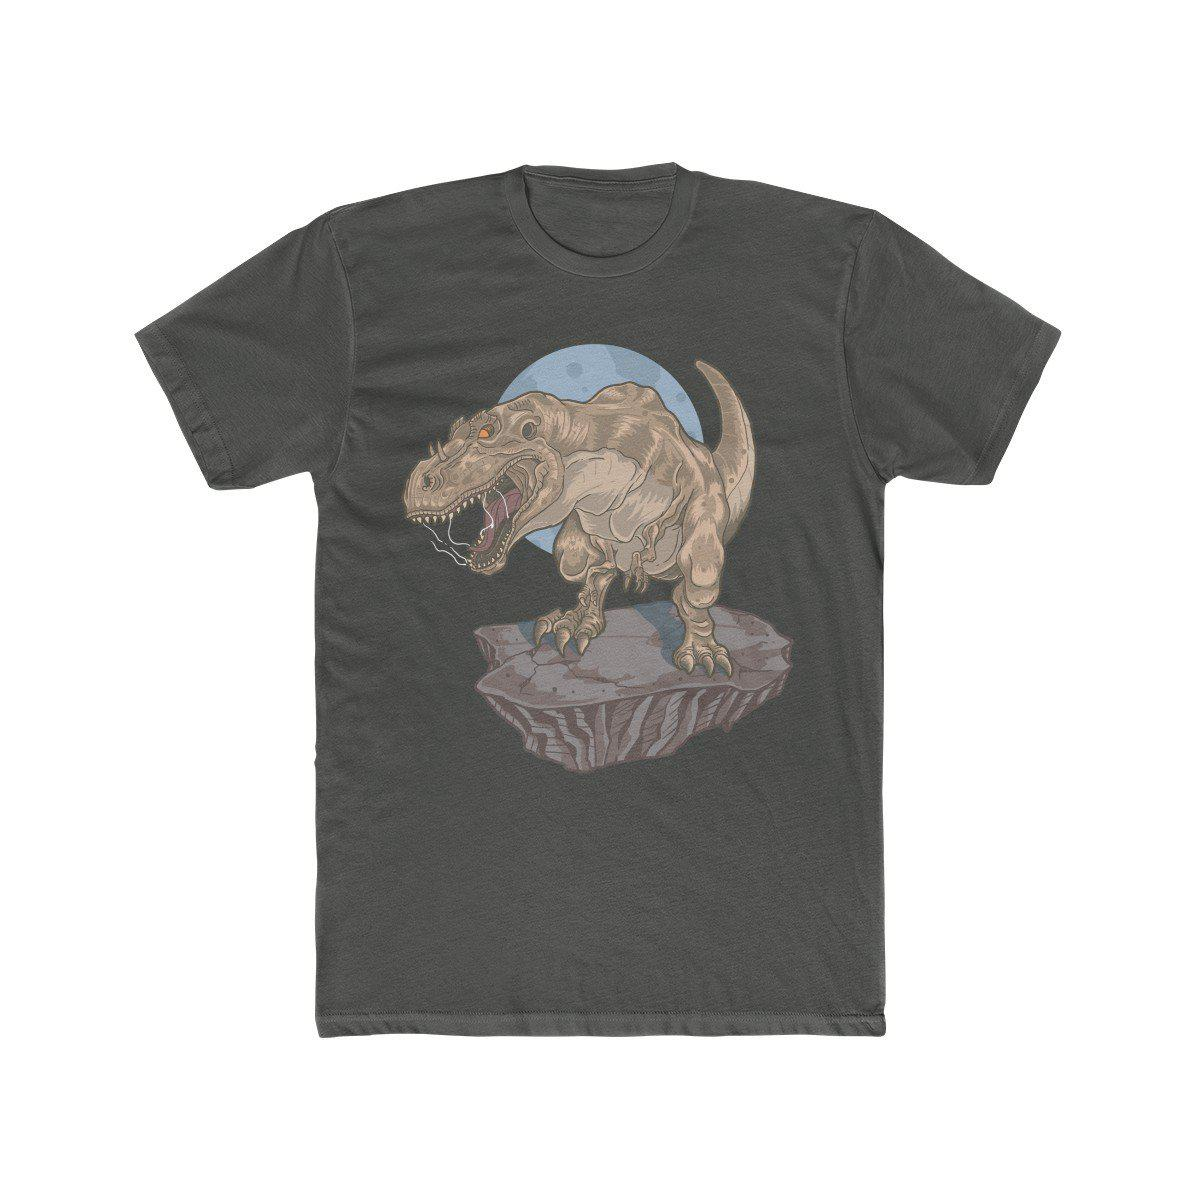 Dinosaur Shirt For Adults